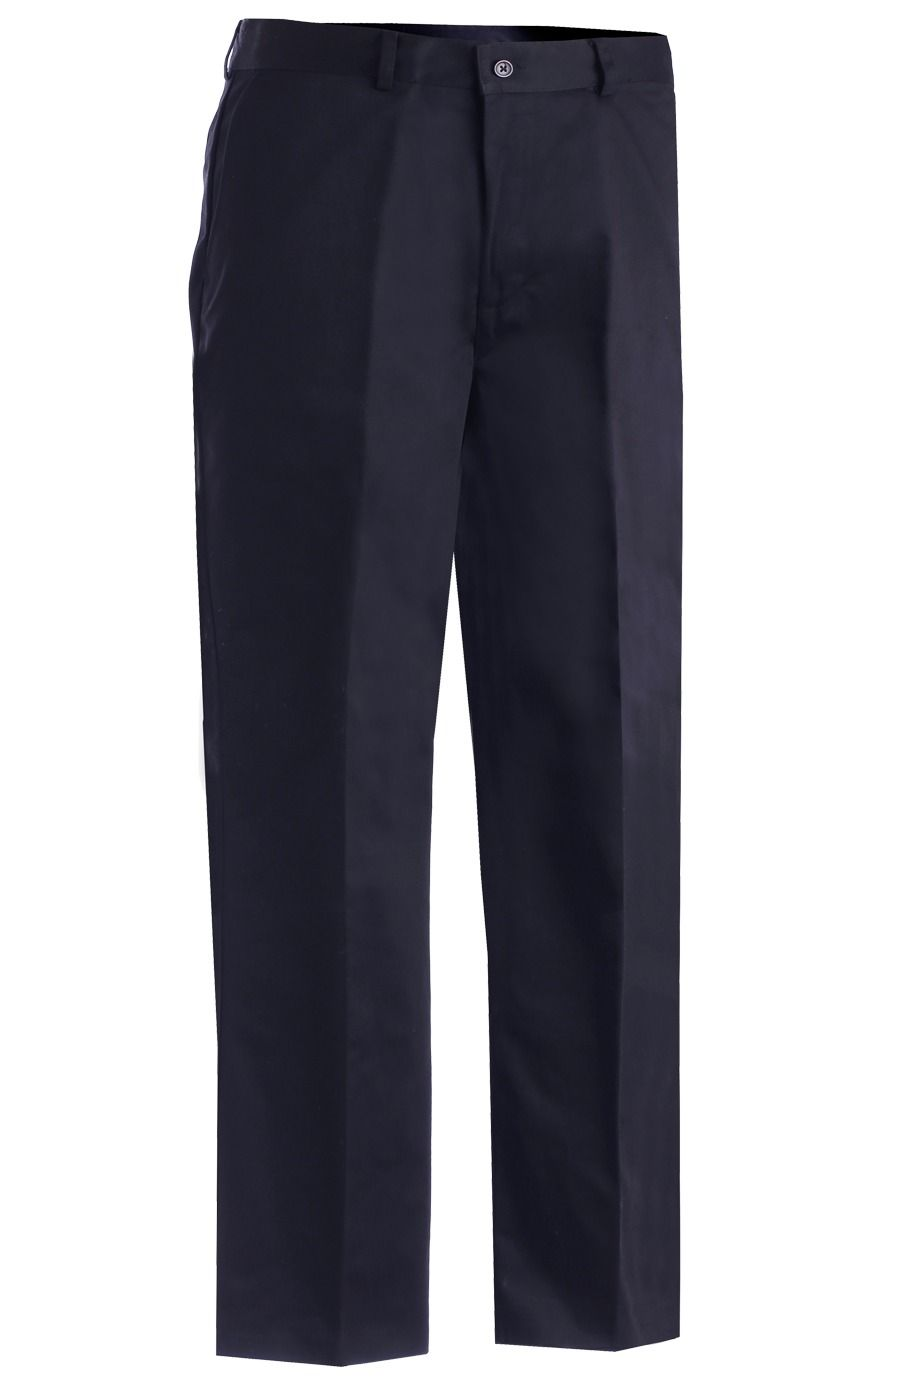 Edwards Edwards Garment Men S Casual Chino Blend Pant Walmart Com In 2021 Casual Chinos Mens Chinos Casual Chino Dress [ 1380 x 920 Pixel ]